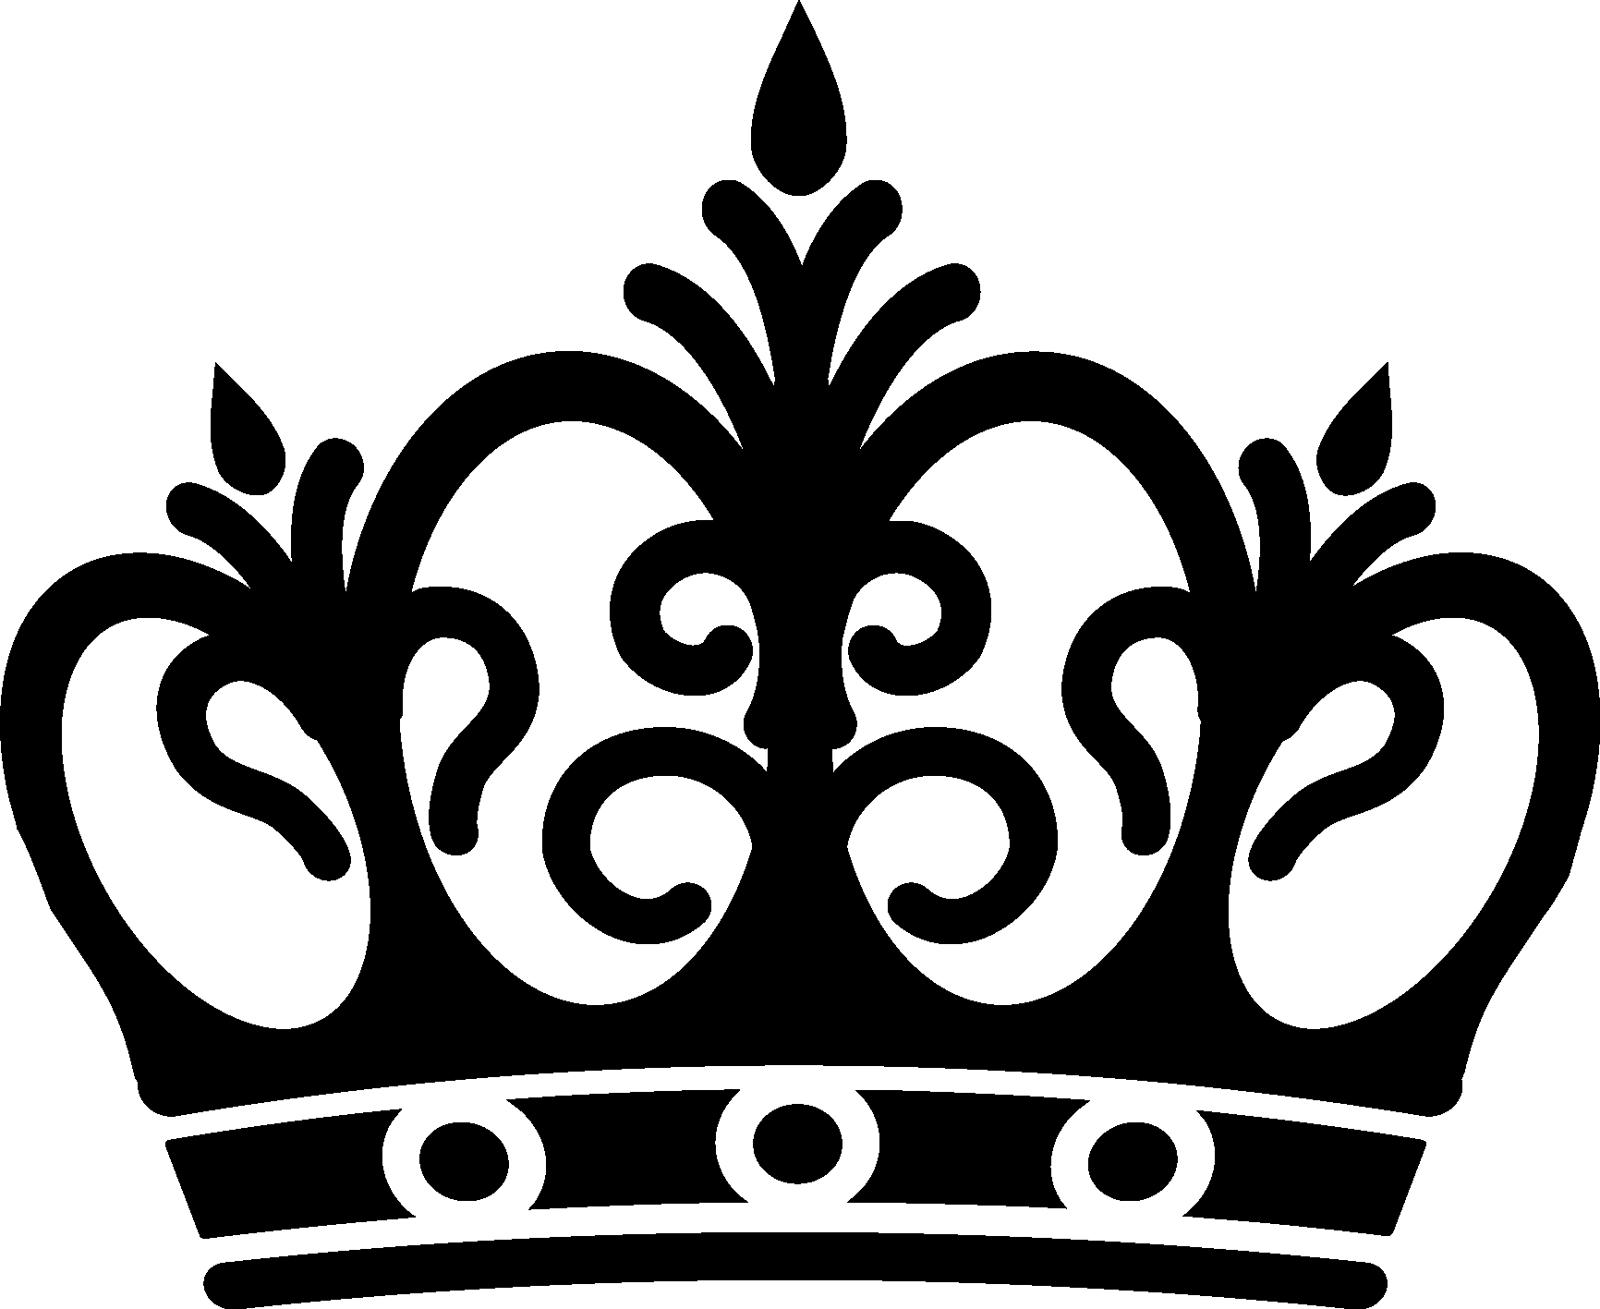 Queen clipart black and white. Best hd crown images